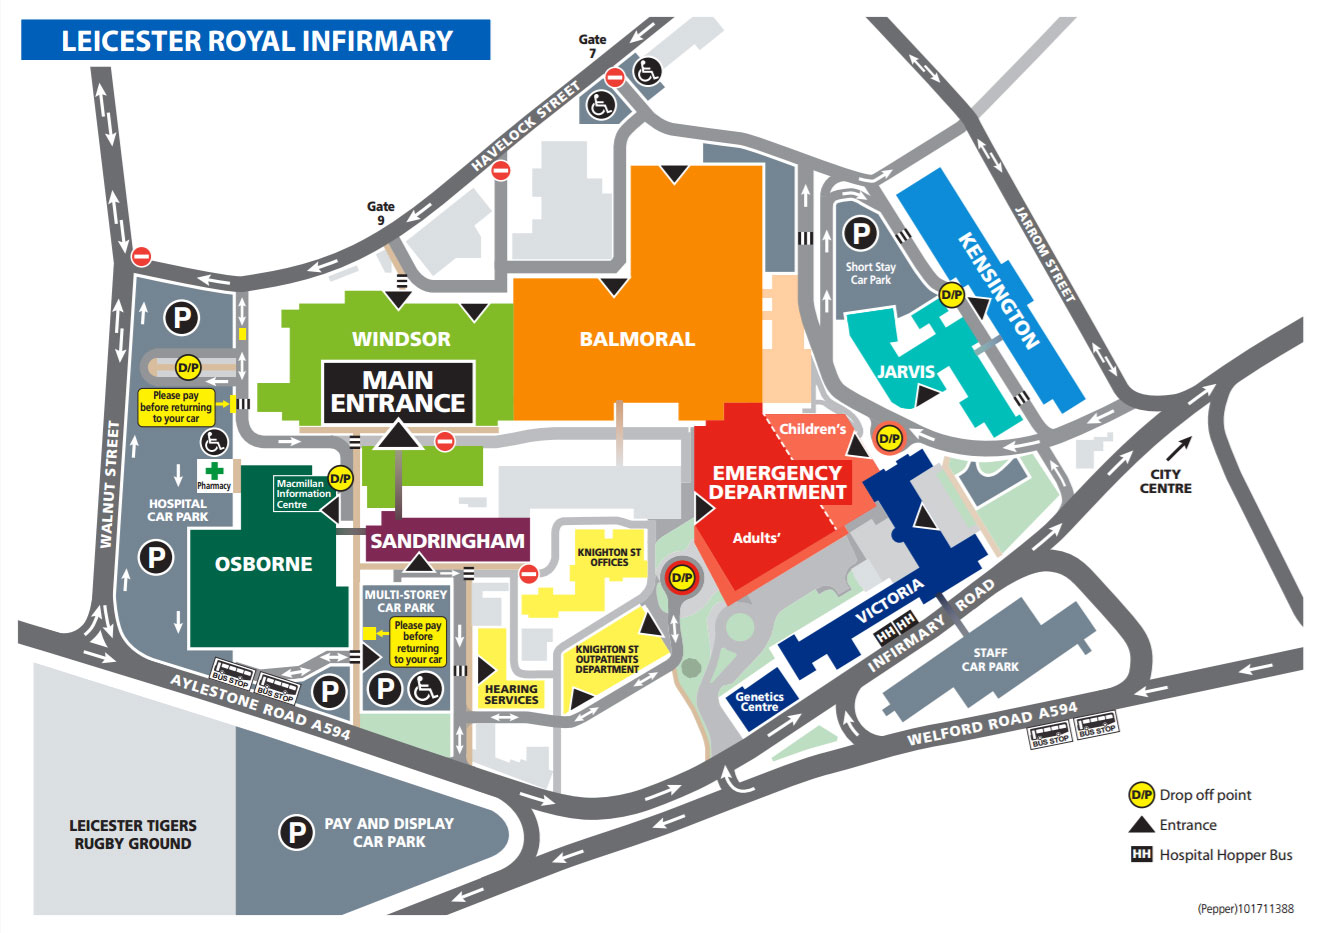 Car travel and parking for the leicester royal infirmary - Leicester city ticket office contact number ...